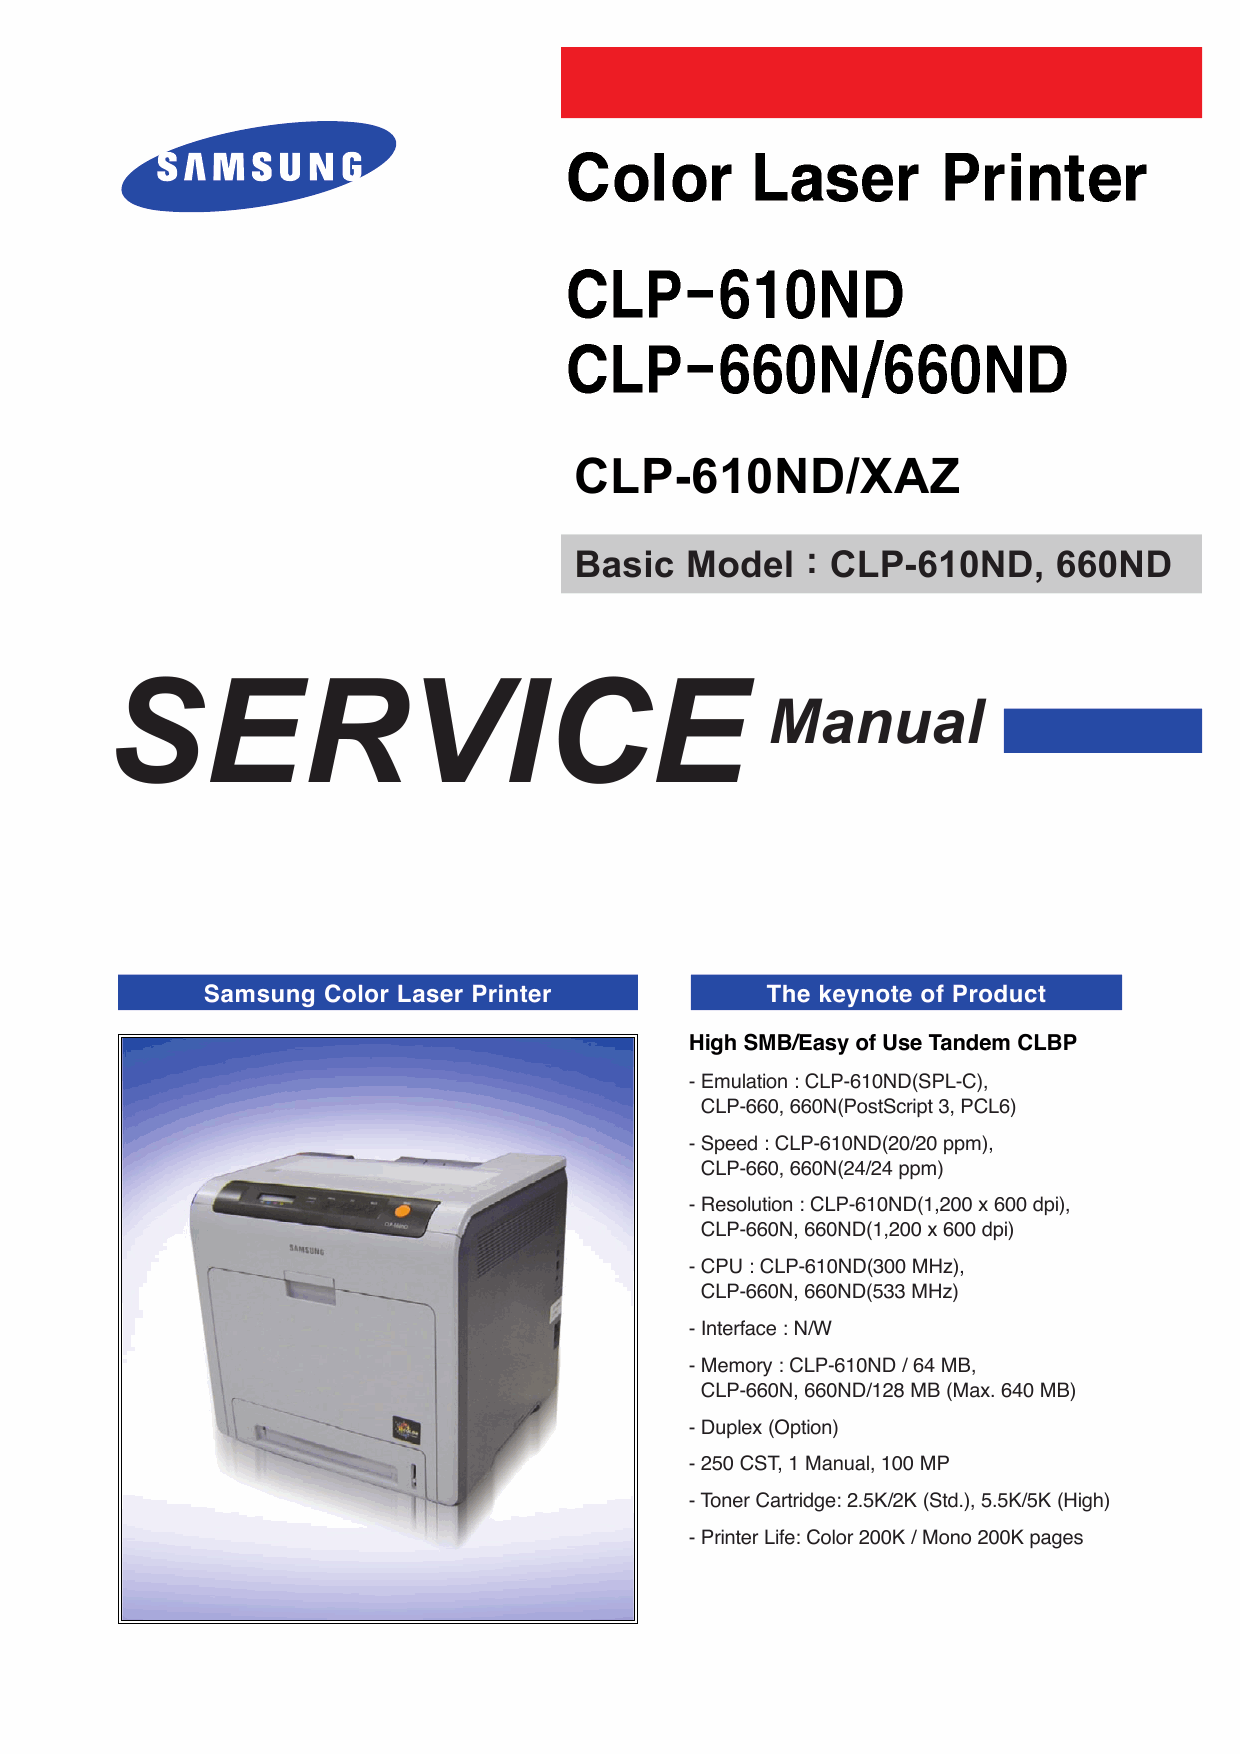 Samsung Color-Laser-Printer CLP-610ND 660N 660ND Parts and Service Manual-1